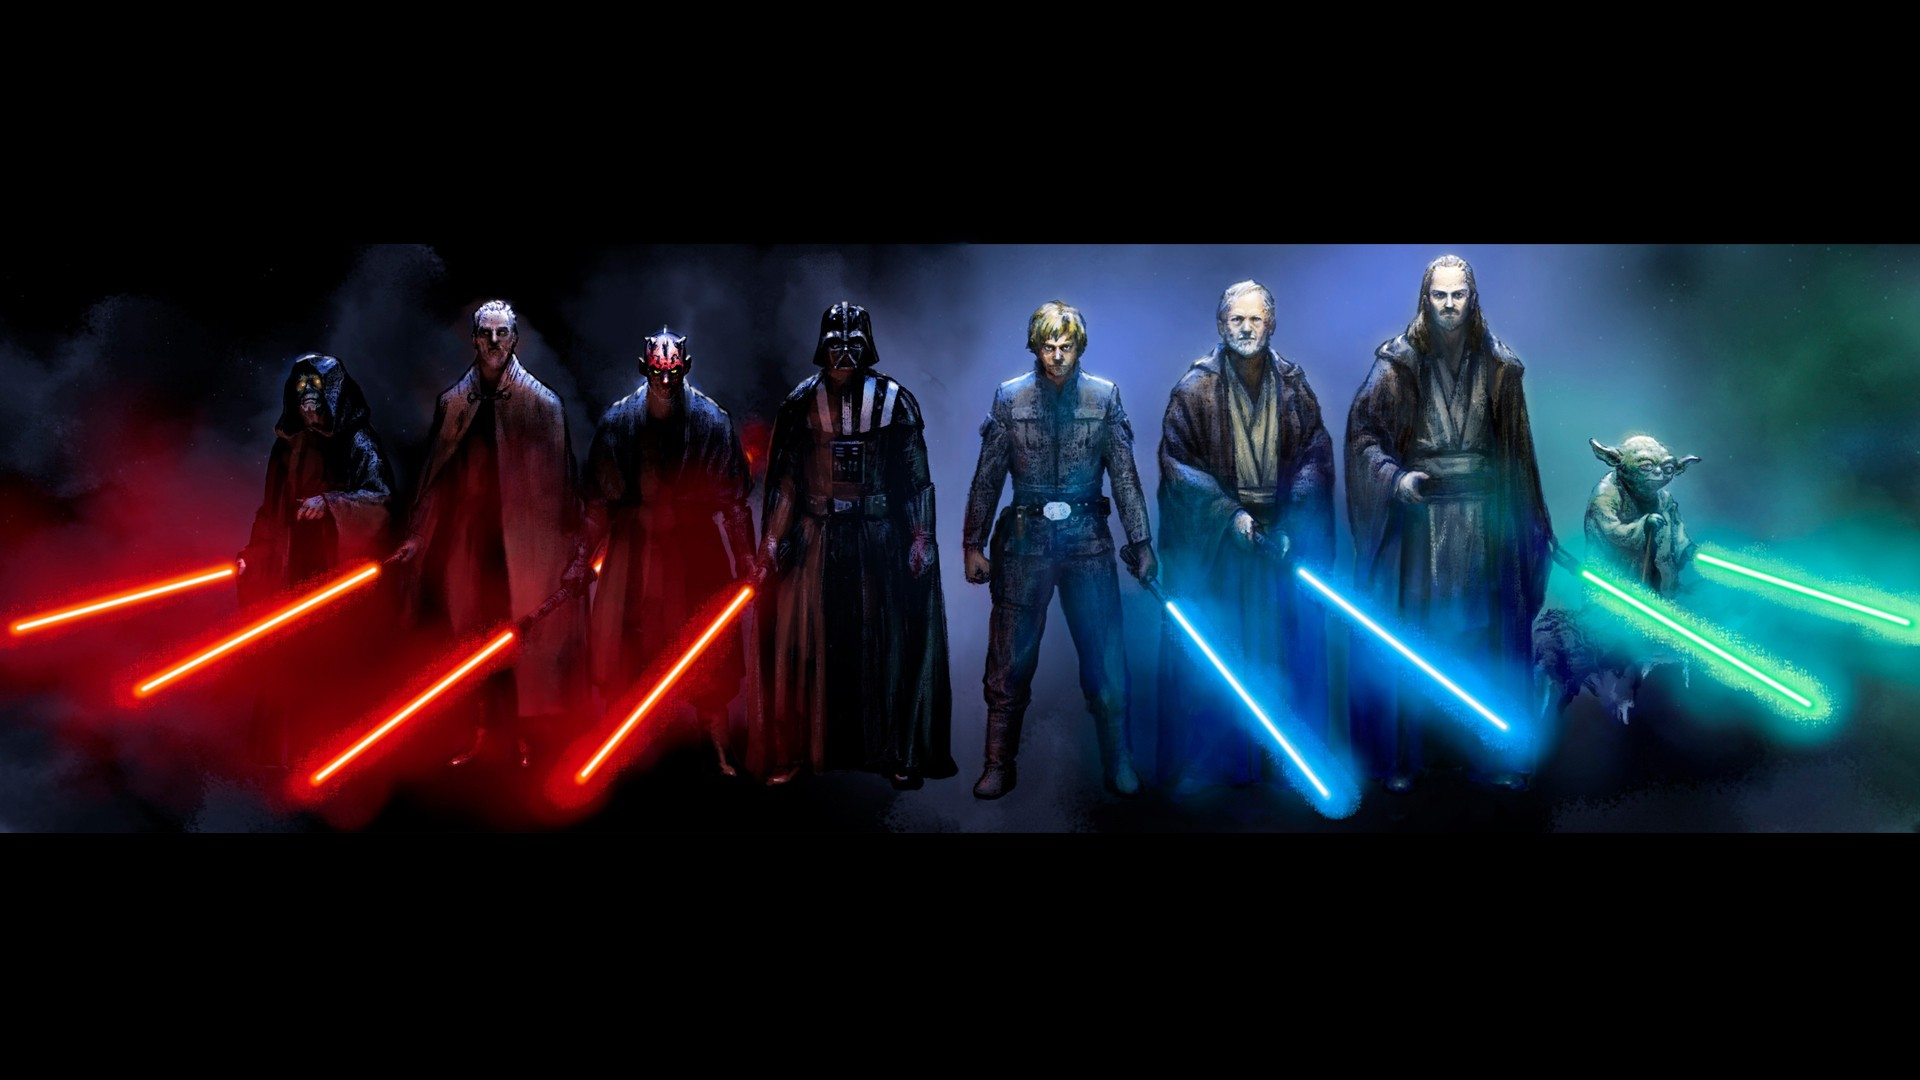 sith 4K wallpapers for your desktop or mobile screen free